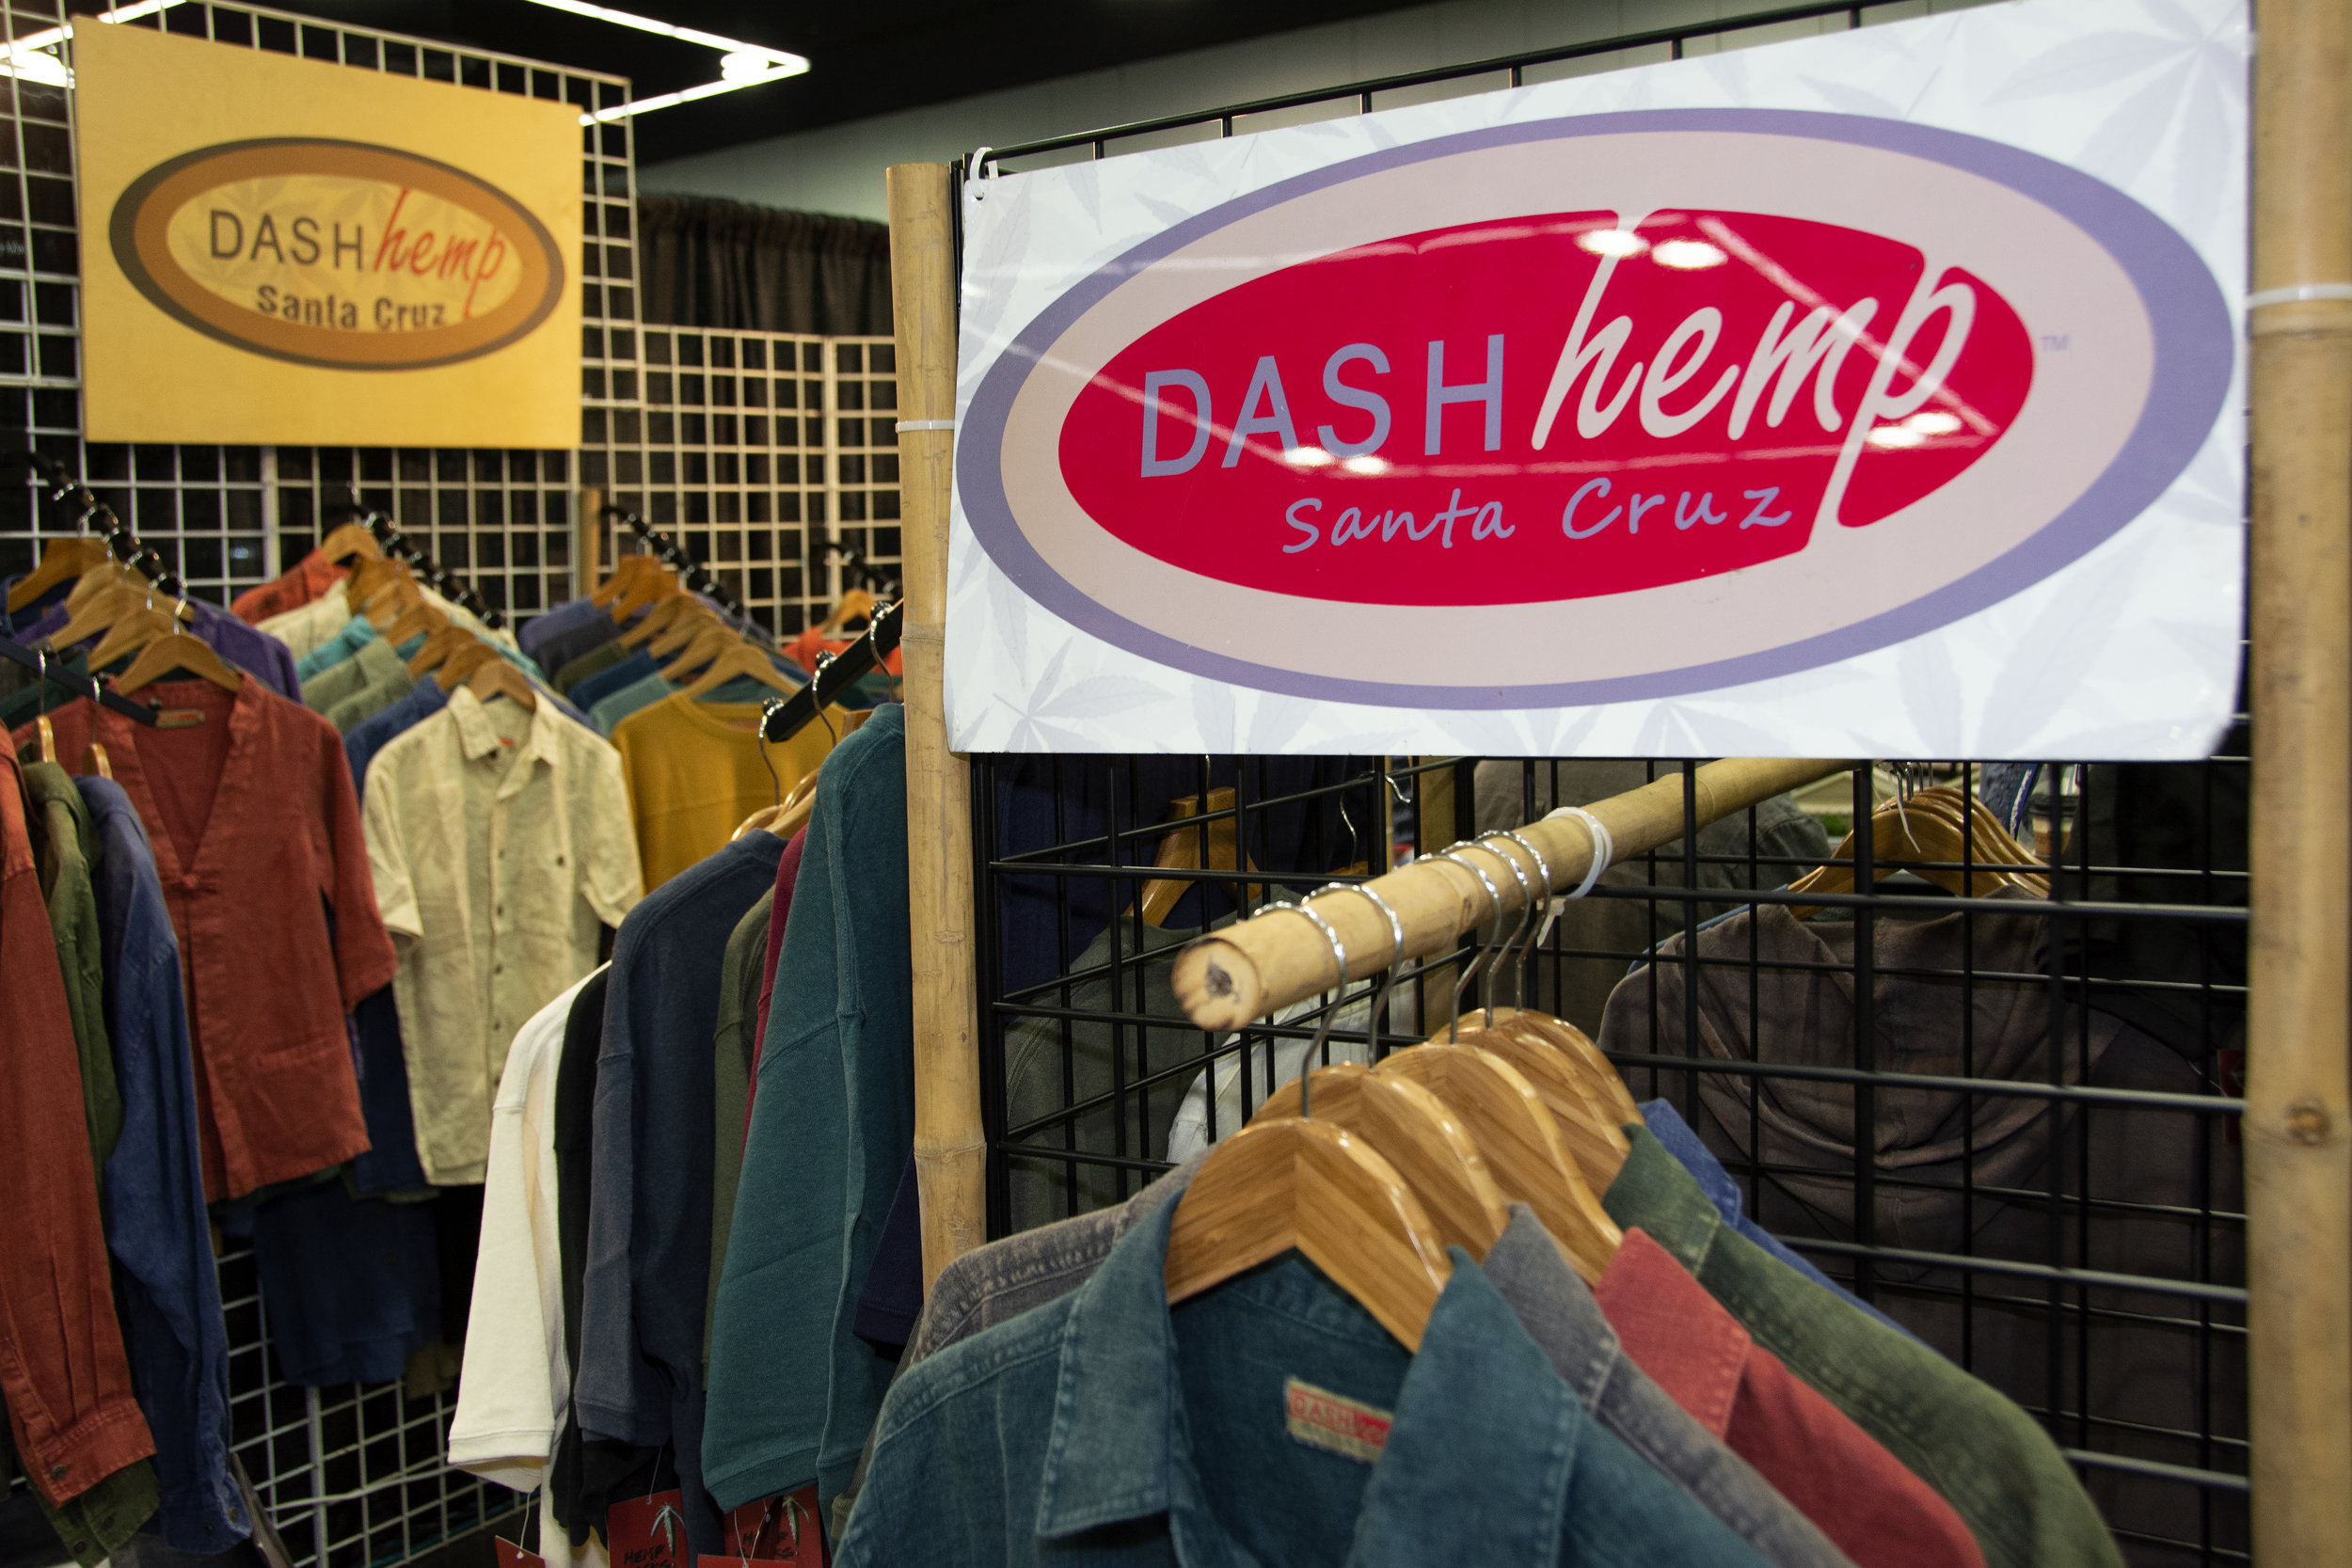 Dash Hemp - Santa Cruz - Evolution Mine is proud to introduce the Dash Hemp Co. producing hemp and other organic papers. We've been making hemp clothing since 1997. A lot of experience in the hemp industry making clothing that will last for a long time.Why choose Dash Hemp for your hemp wardrobe.? My family name (yes it is Dash) is on every garment we make, so I've always put forth my best possible effort into everything I've ever made and shipped. We use the finest hemp available to make basic styles with detailing and finishing like no other company in the hemp industry.